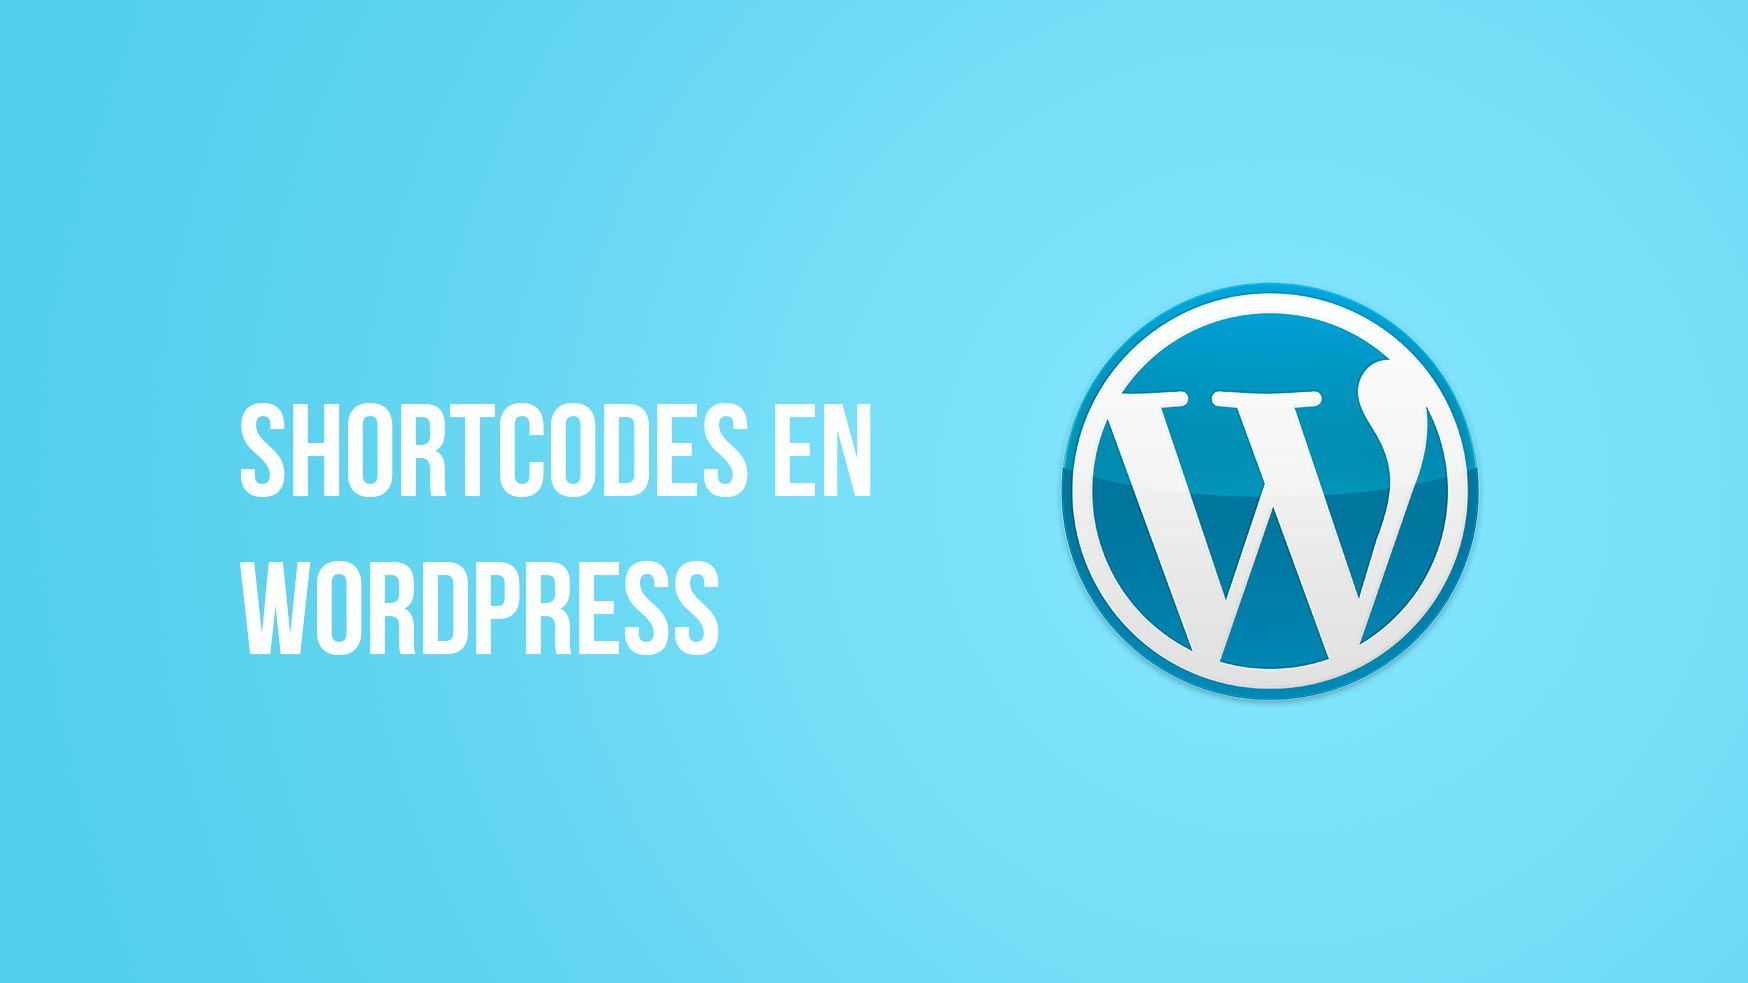 Shortcodes en WordPress